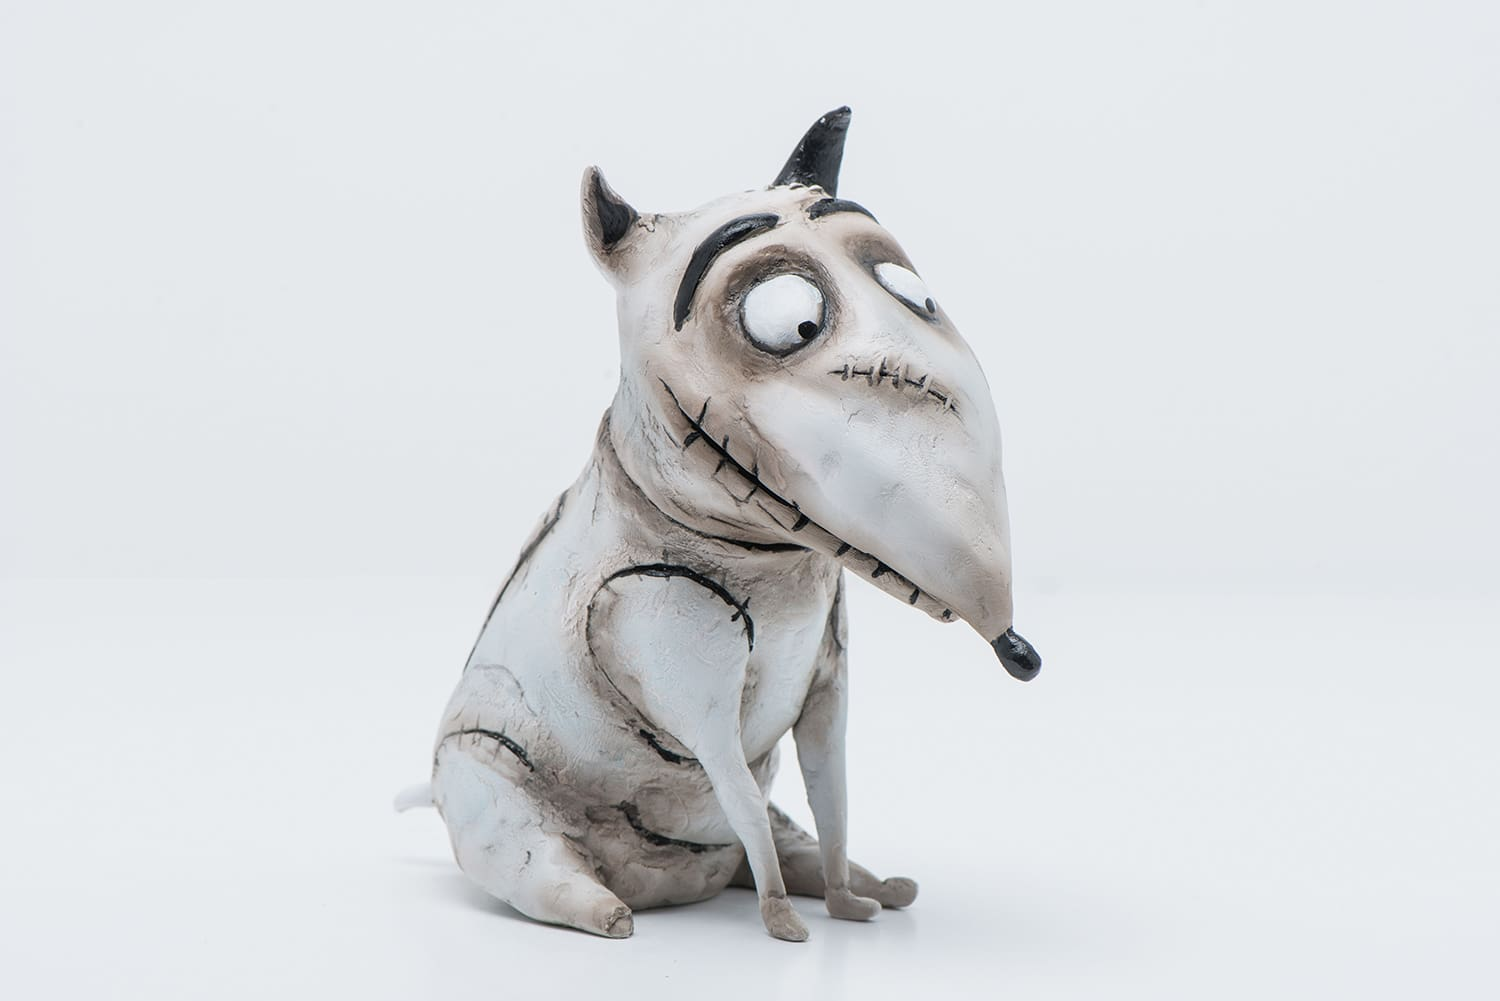 3D Printed Anubis the barkless dog